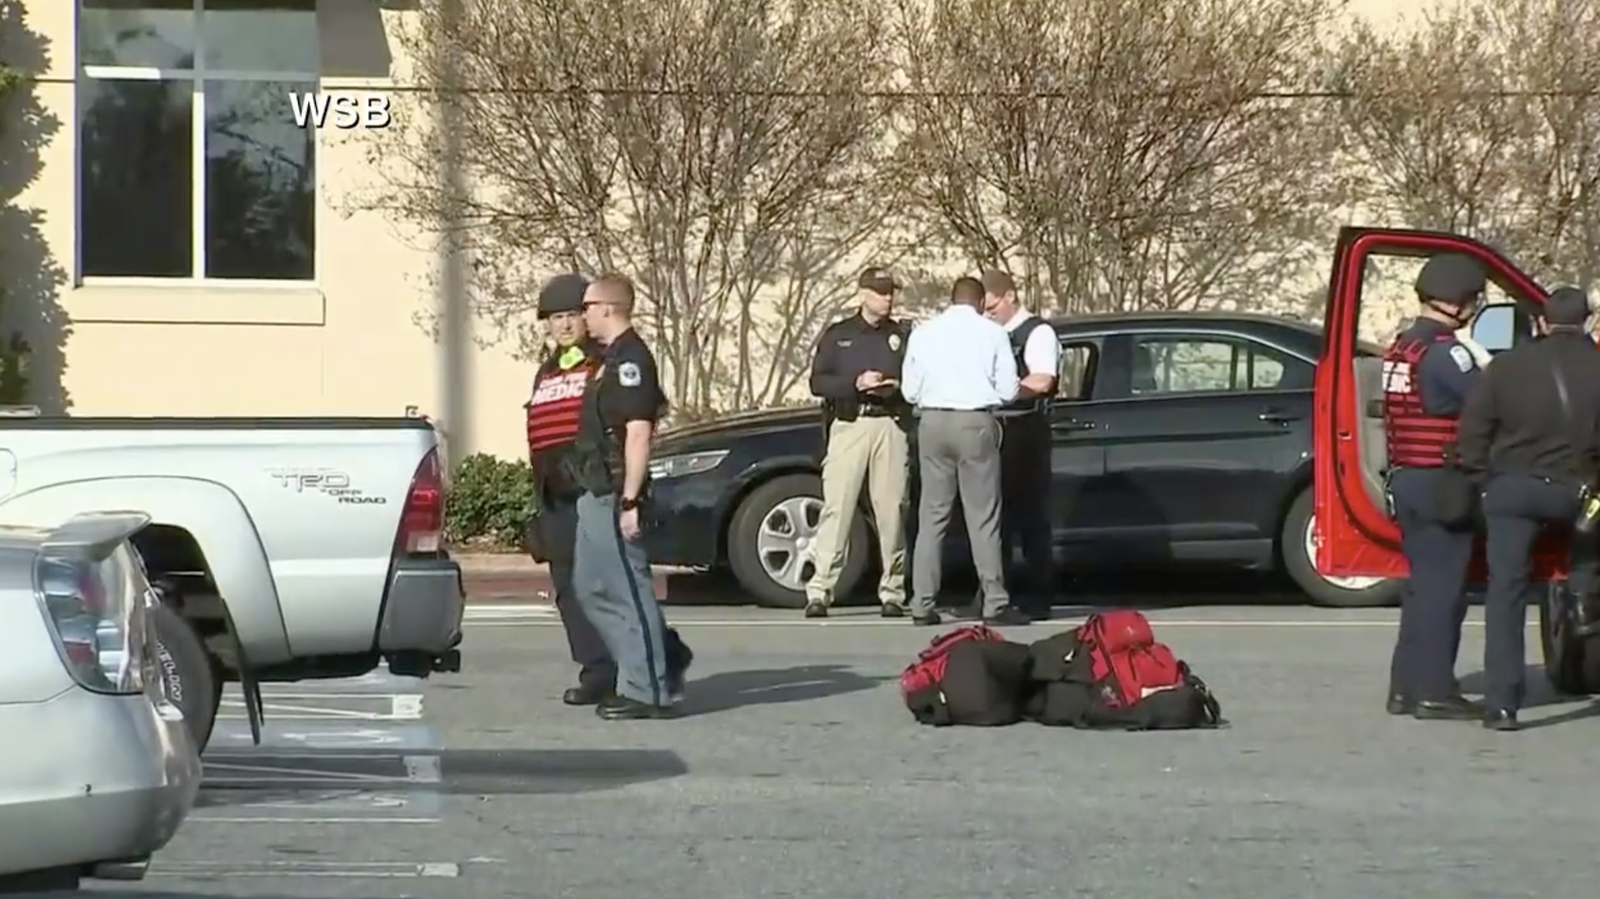 Shooting incident at crowded Atlanta mall sparks panic (Screenshot courtesy of WGCL via CNN Newsource)